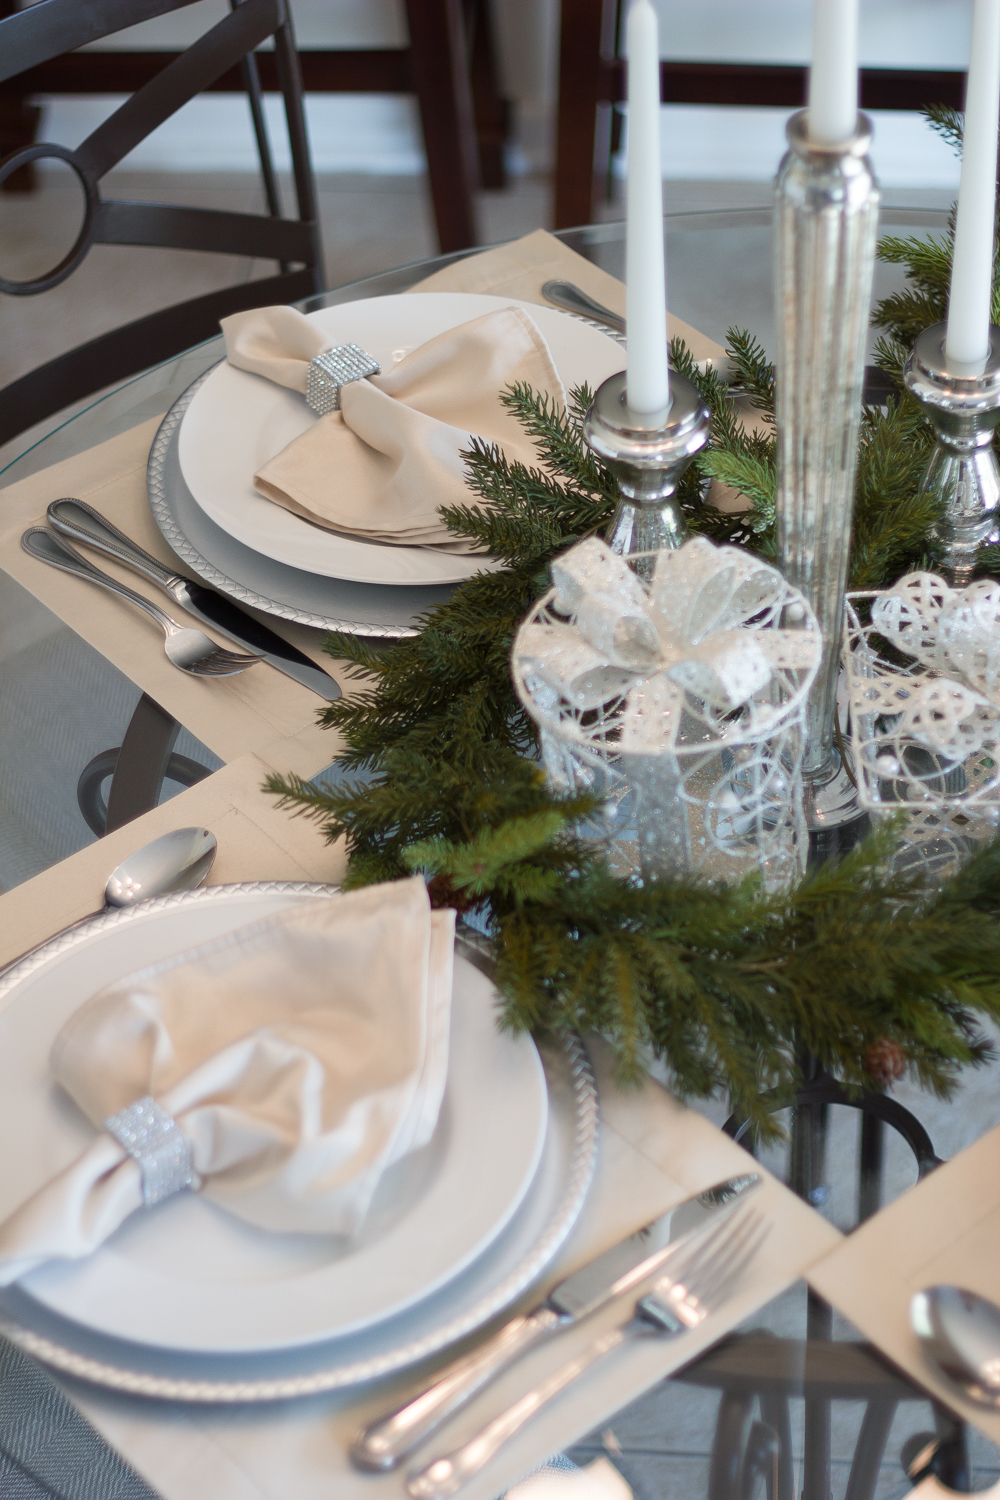 Christmas tablescaping small table #decor #decor tips #ad #AtHomeforChristmas